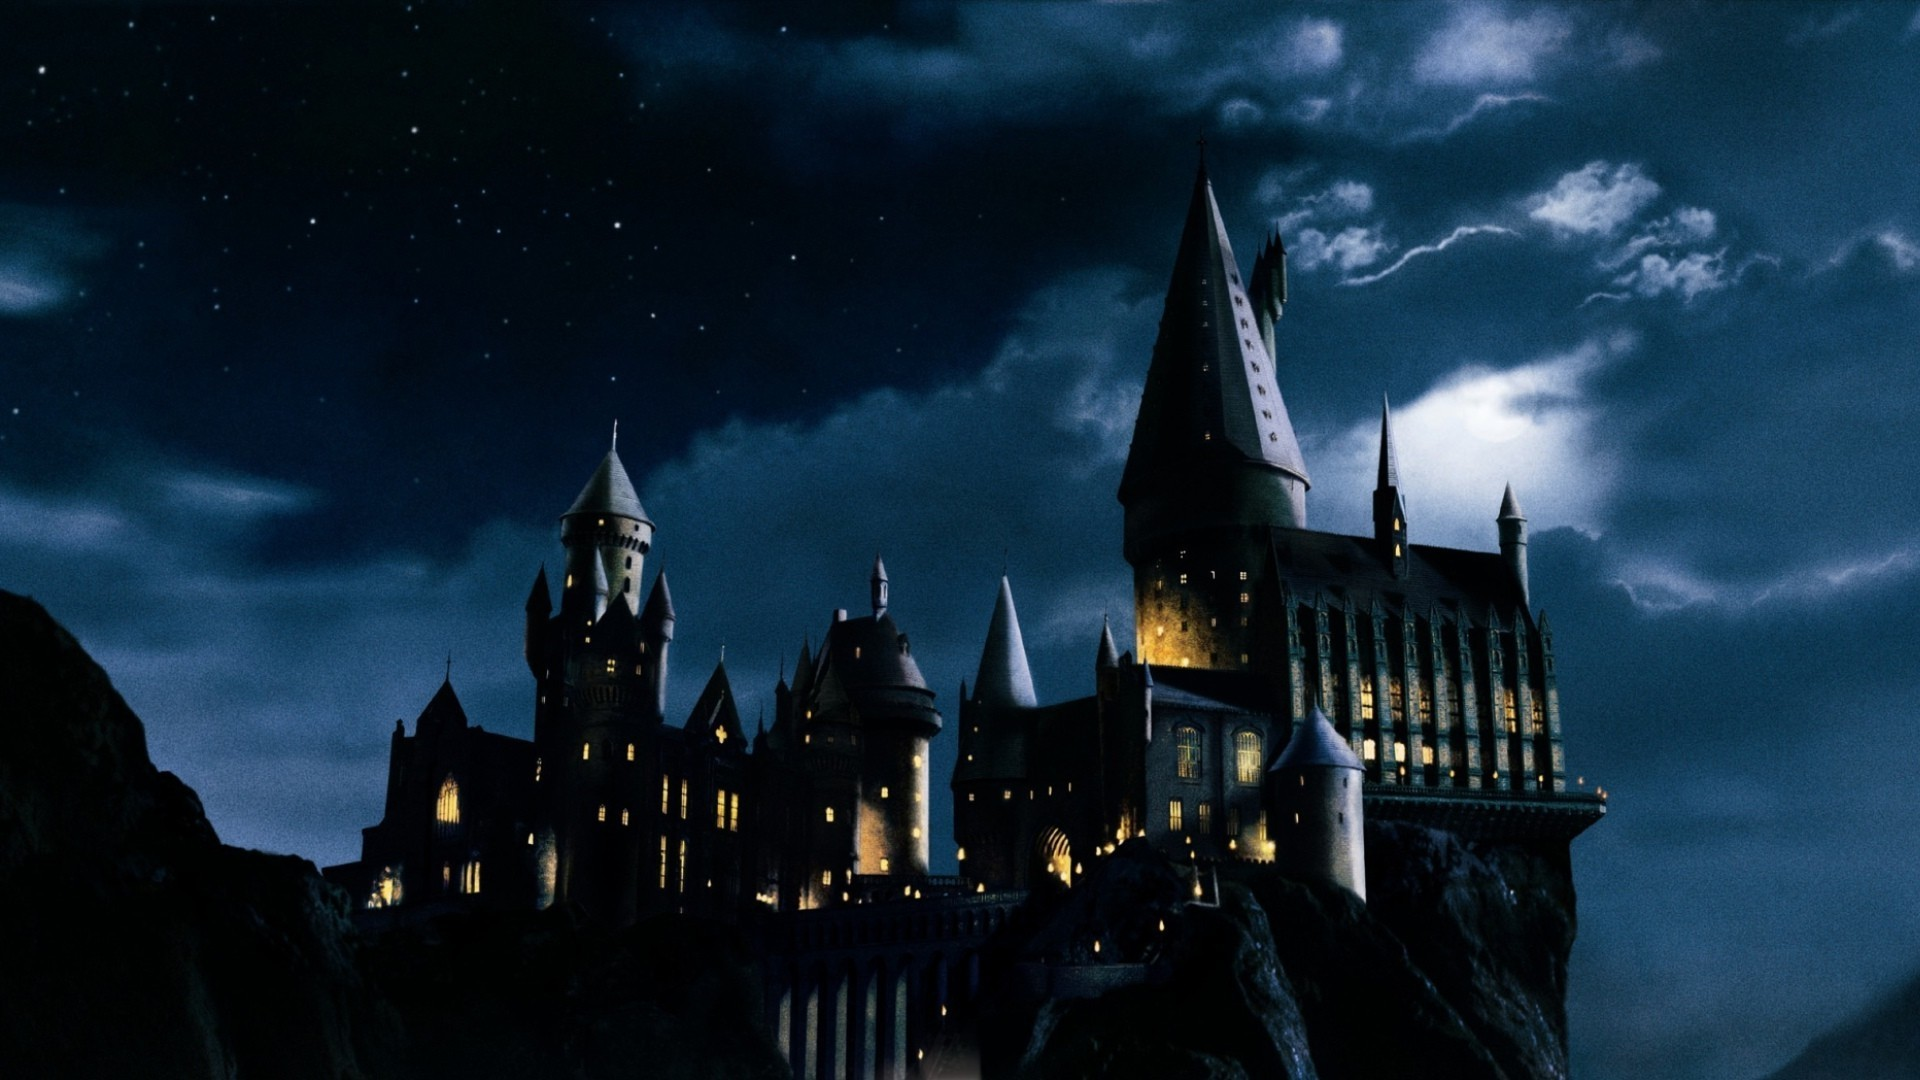 Res: 1920x1080, Harry Potter Wallpapers Archives Page 2 of 4 Wallpaper